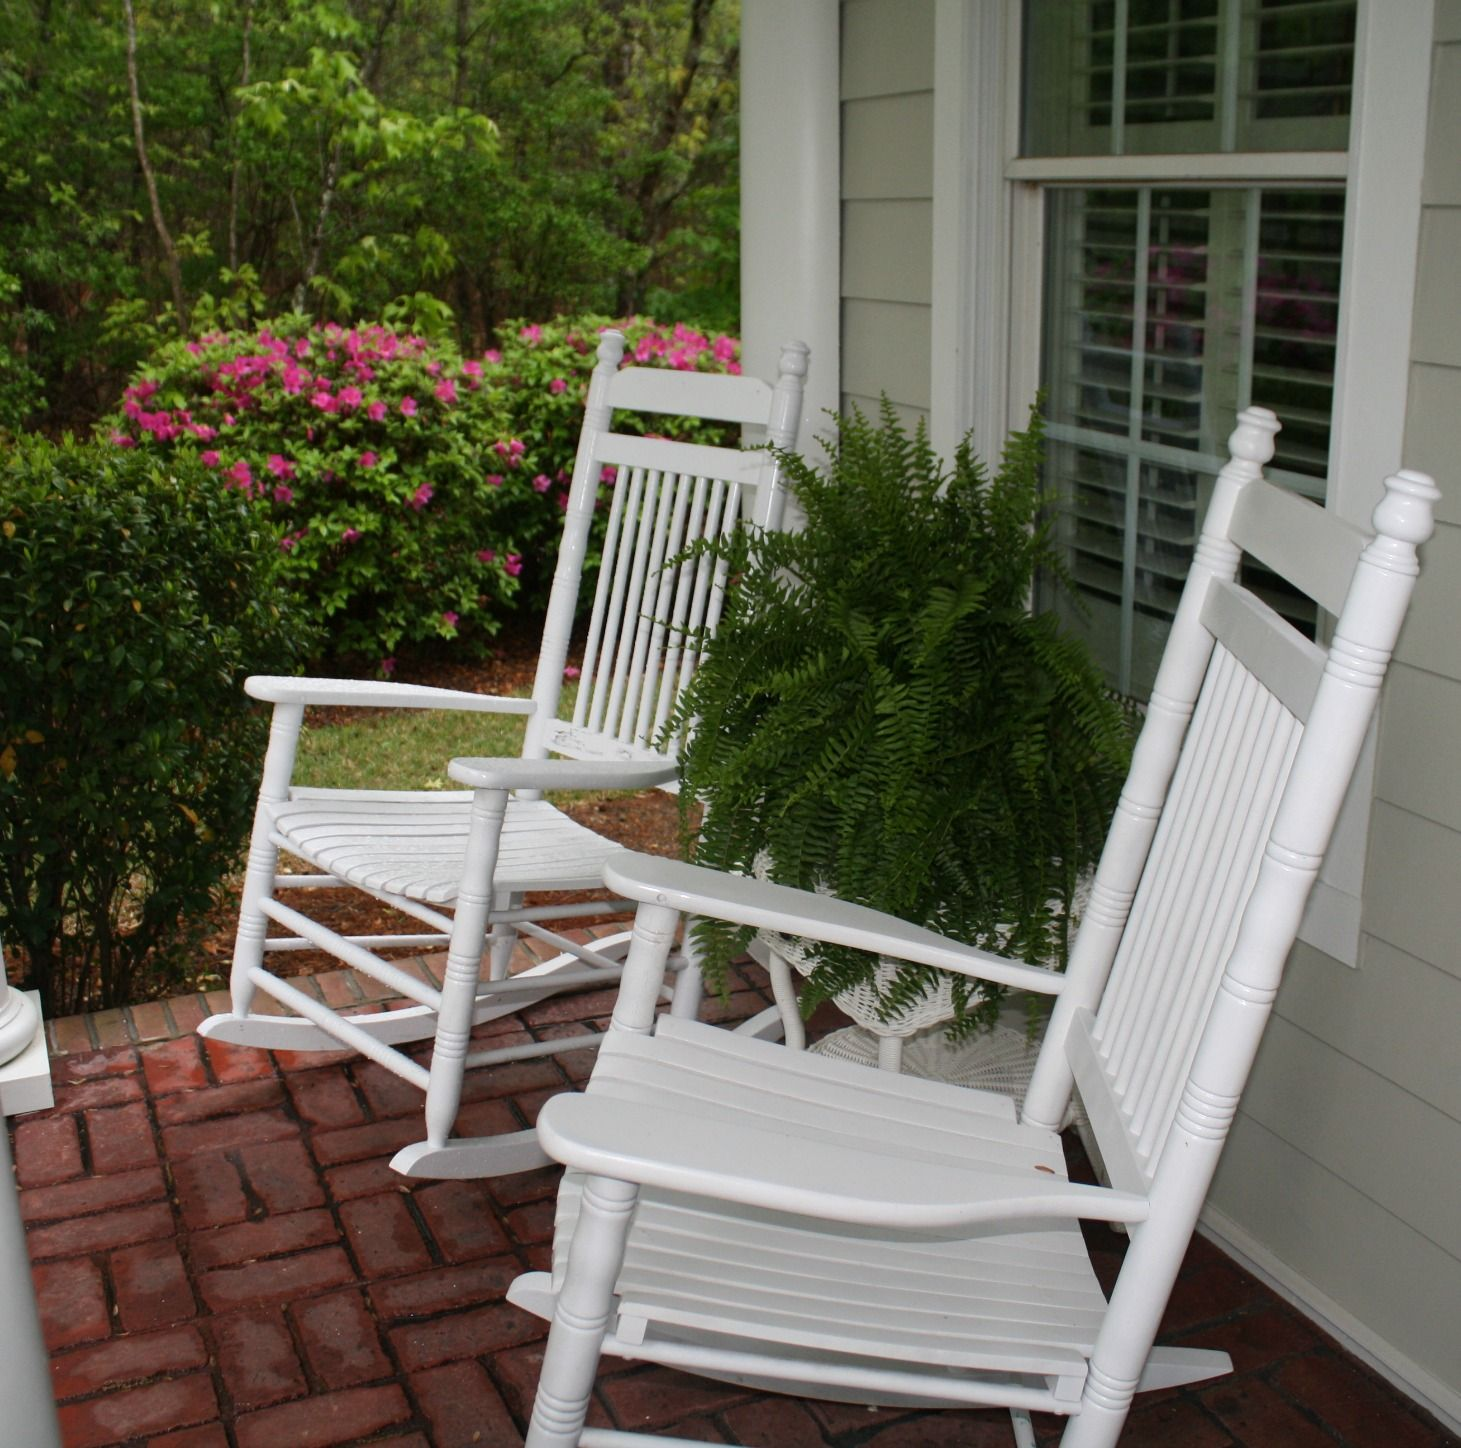 white rocking chairs for sale reclining booster high chair cracker barrel boston ferns front porch